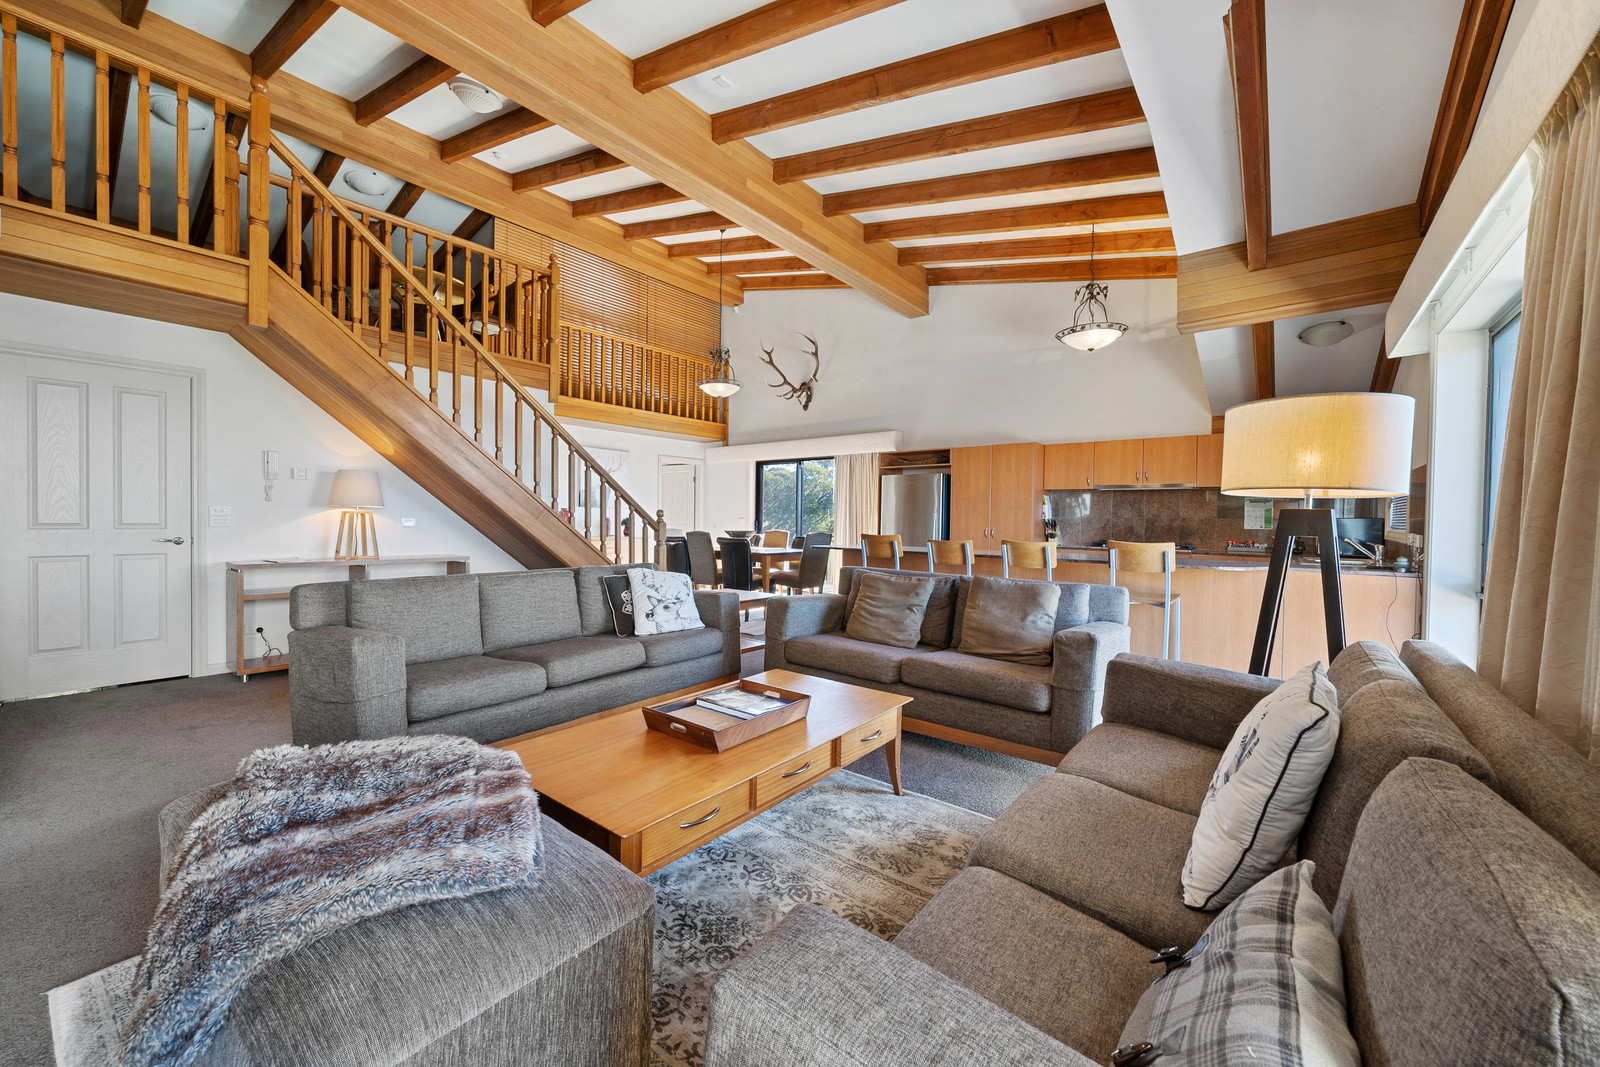 011_Open2view_ID632124-St_Moritz_pension